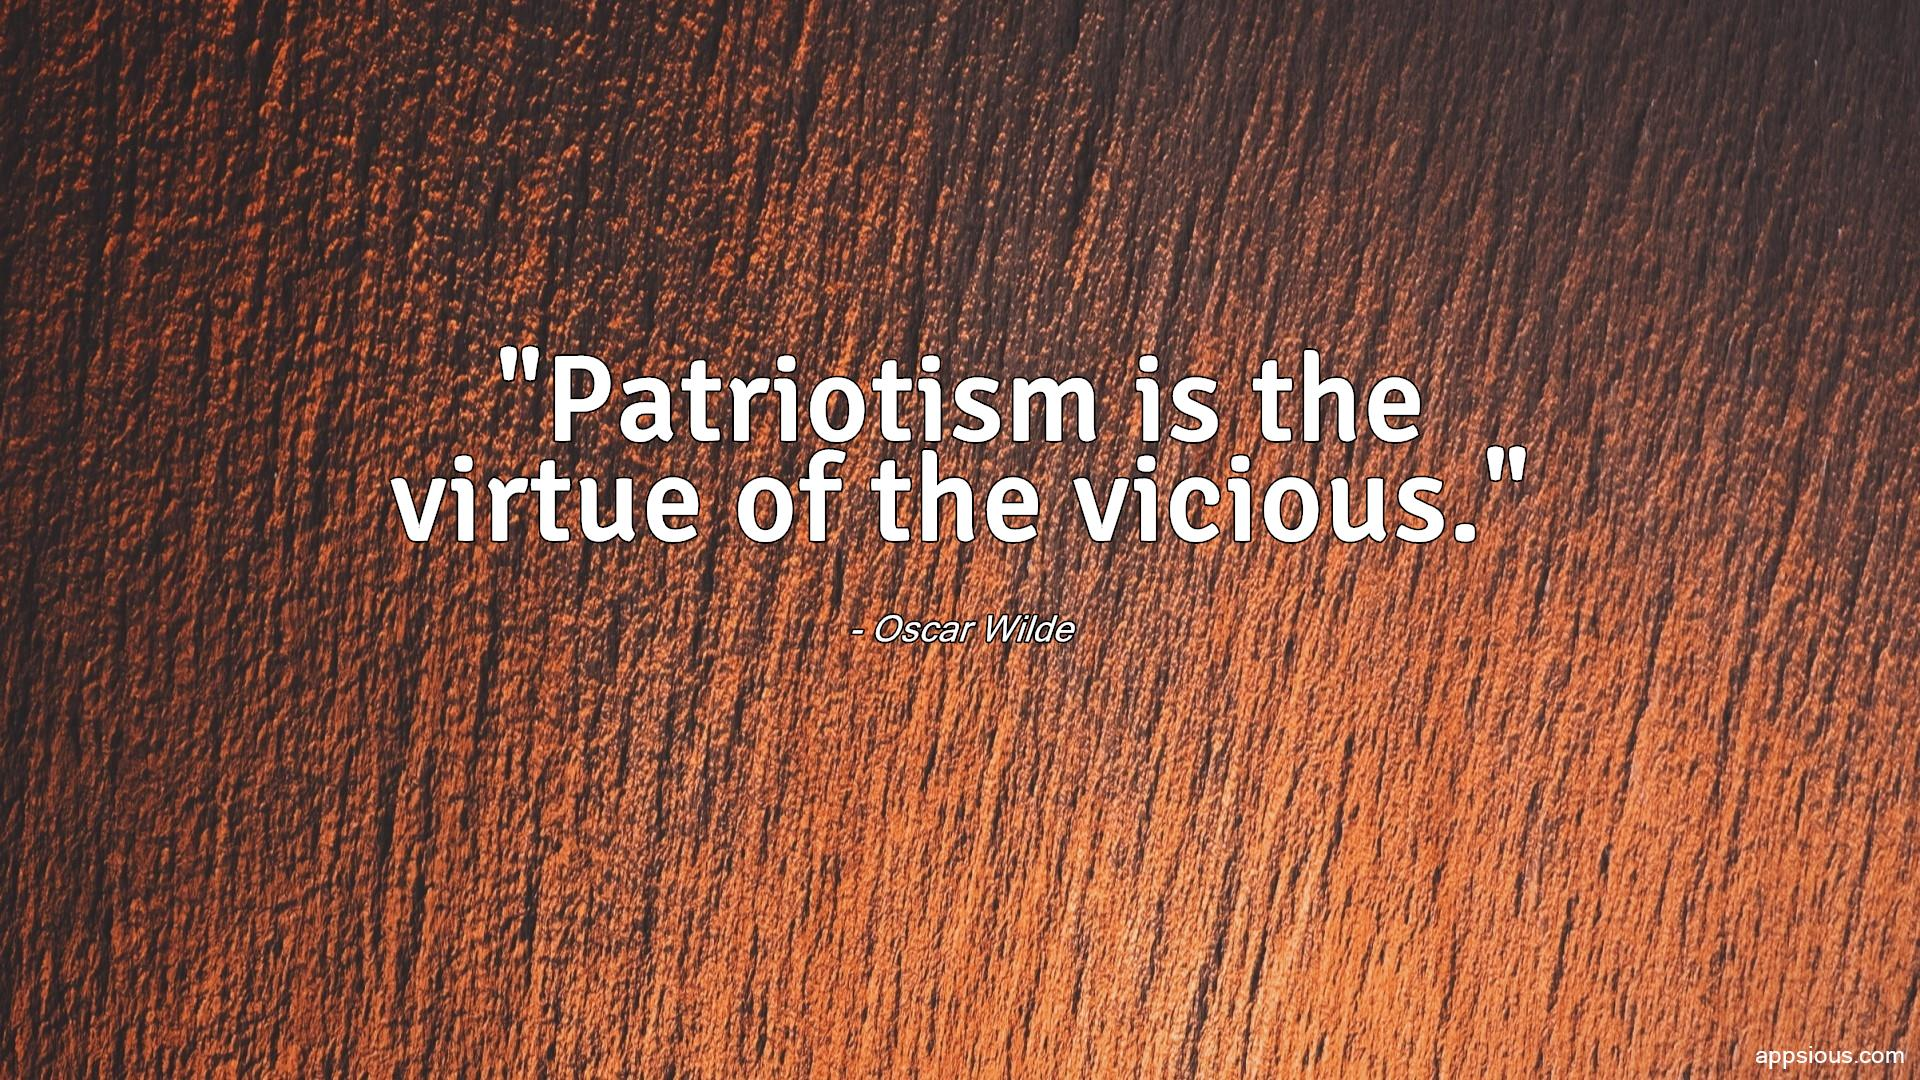 Patriotism is the virtue of the vicious.